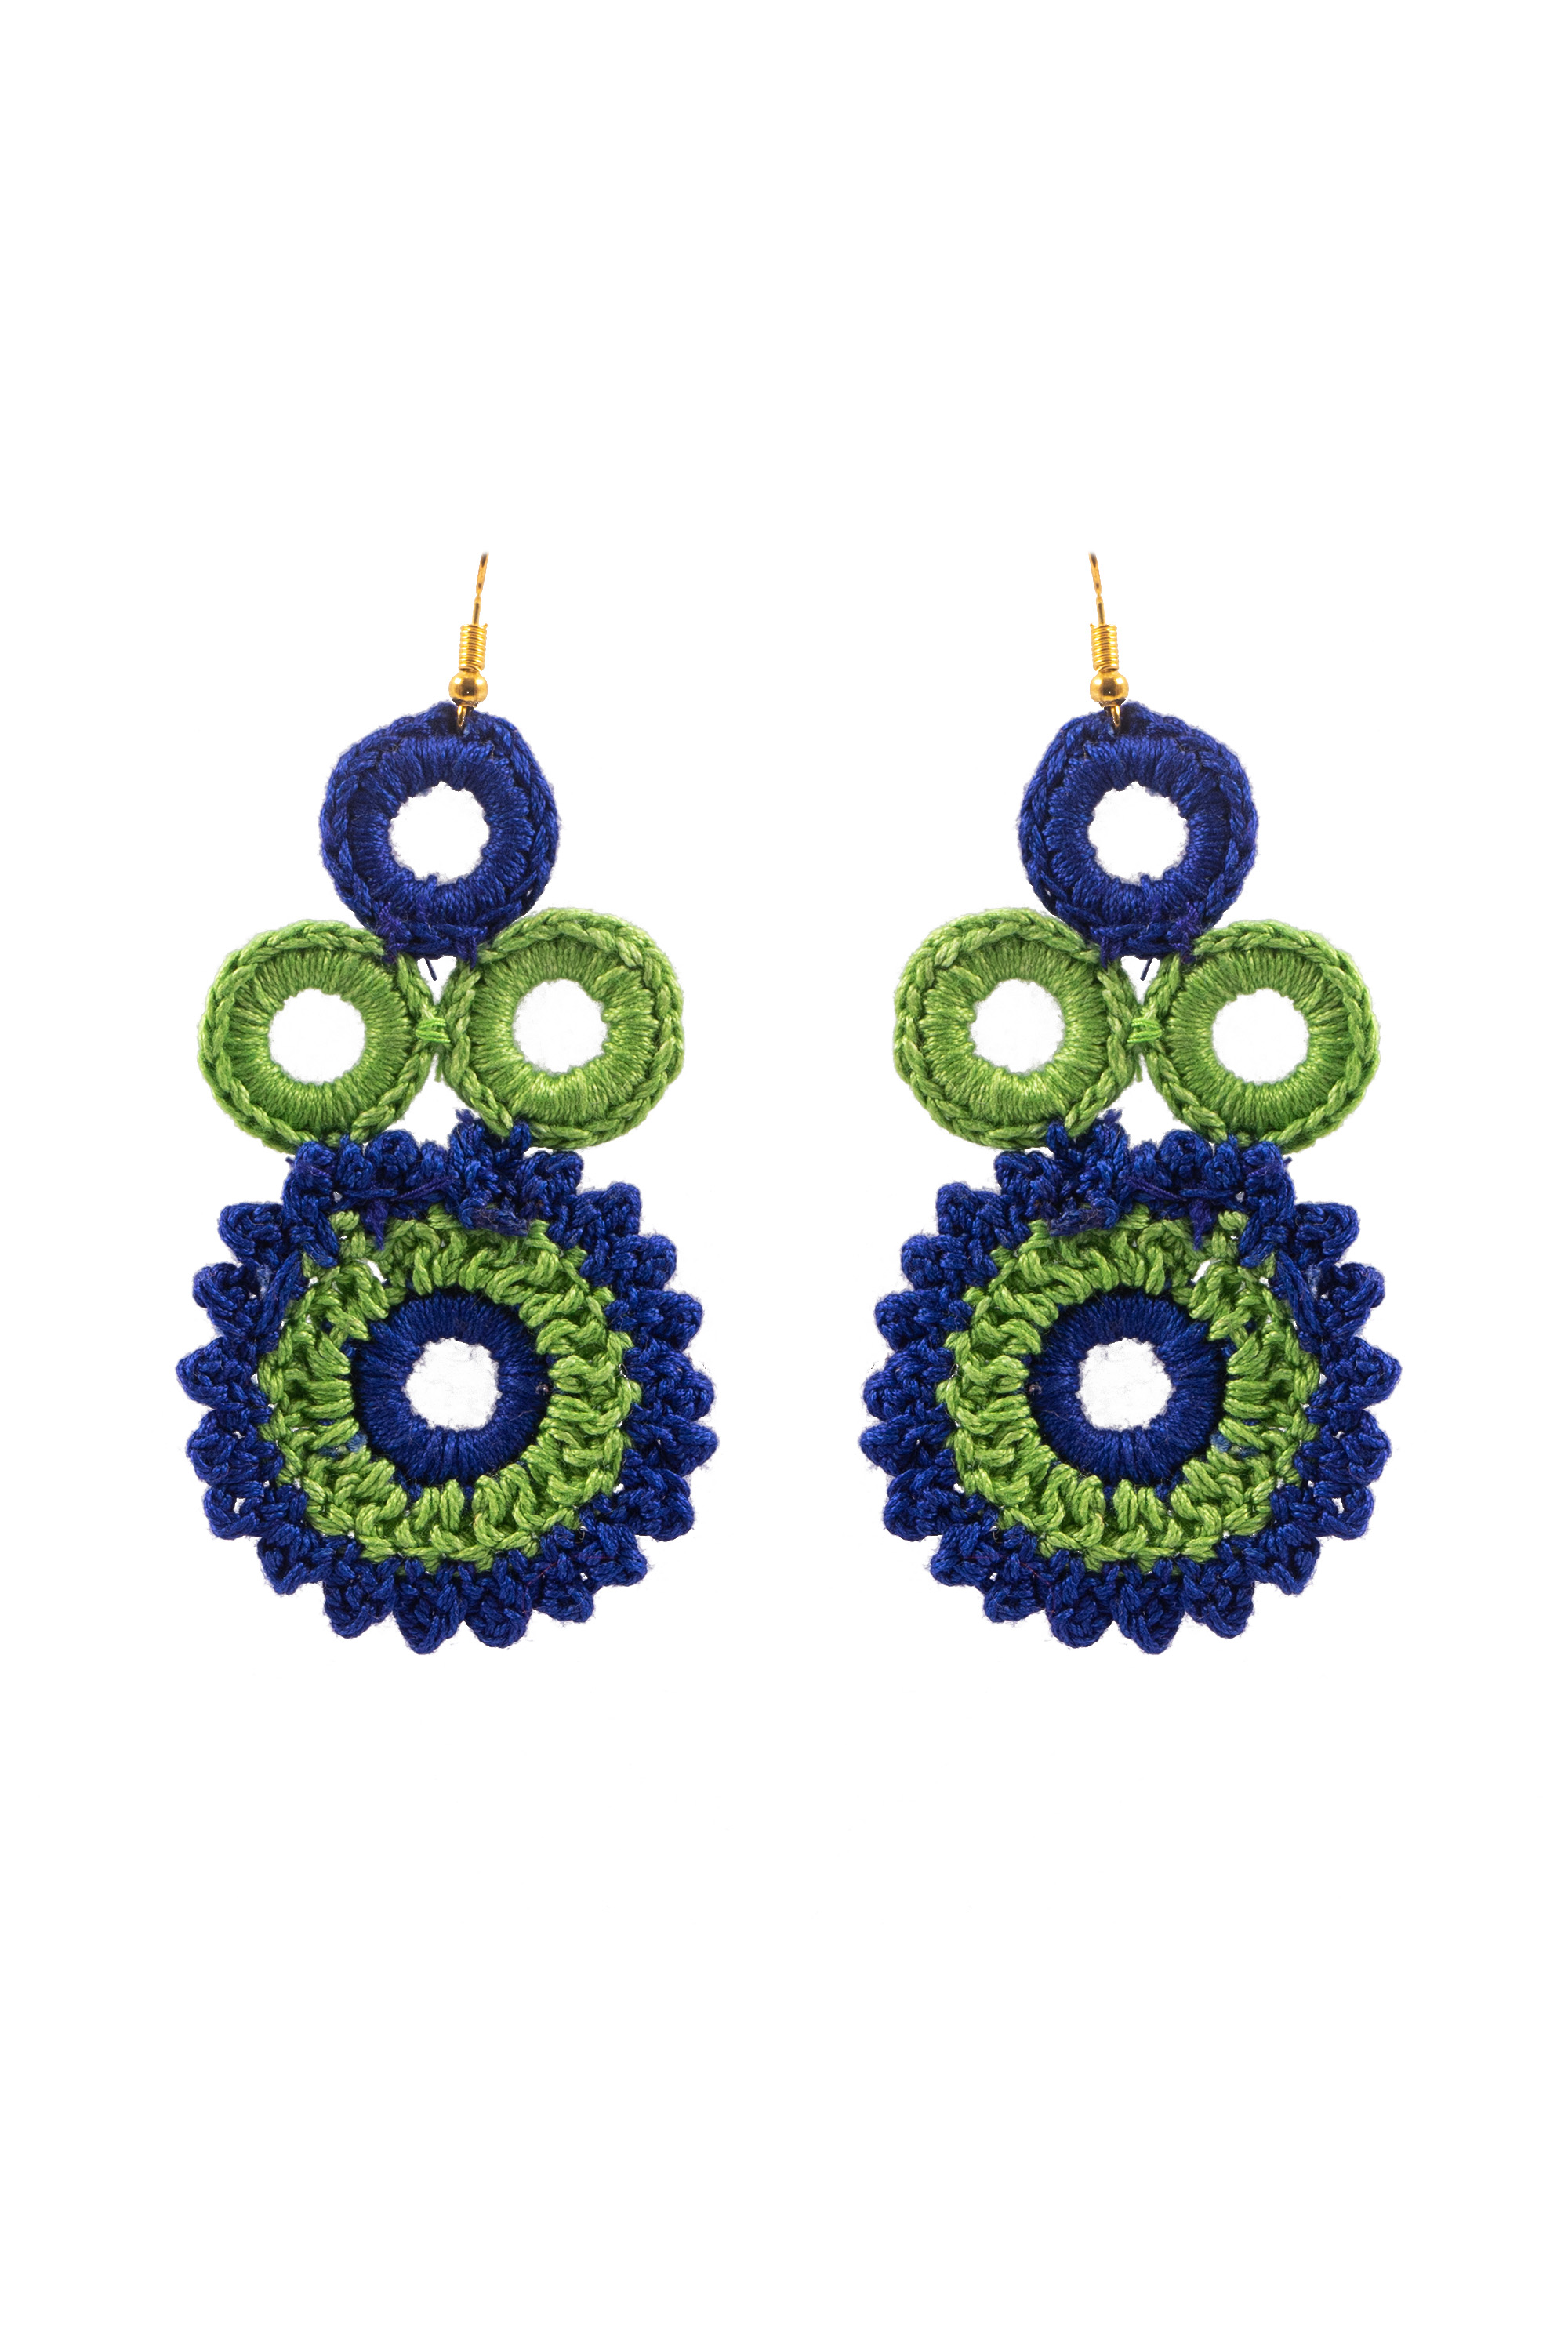 Happy Threads Floral Crochet Earrings- Muticolour